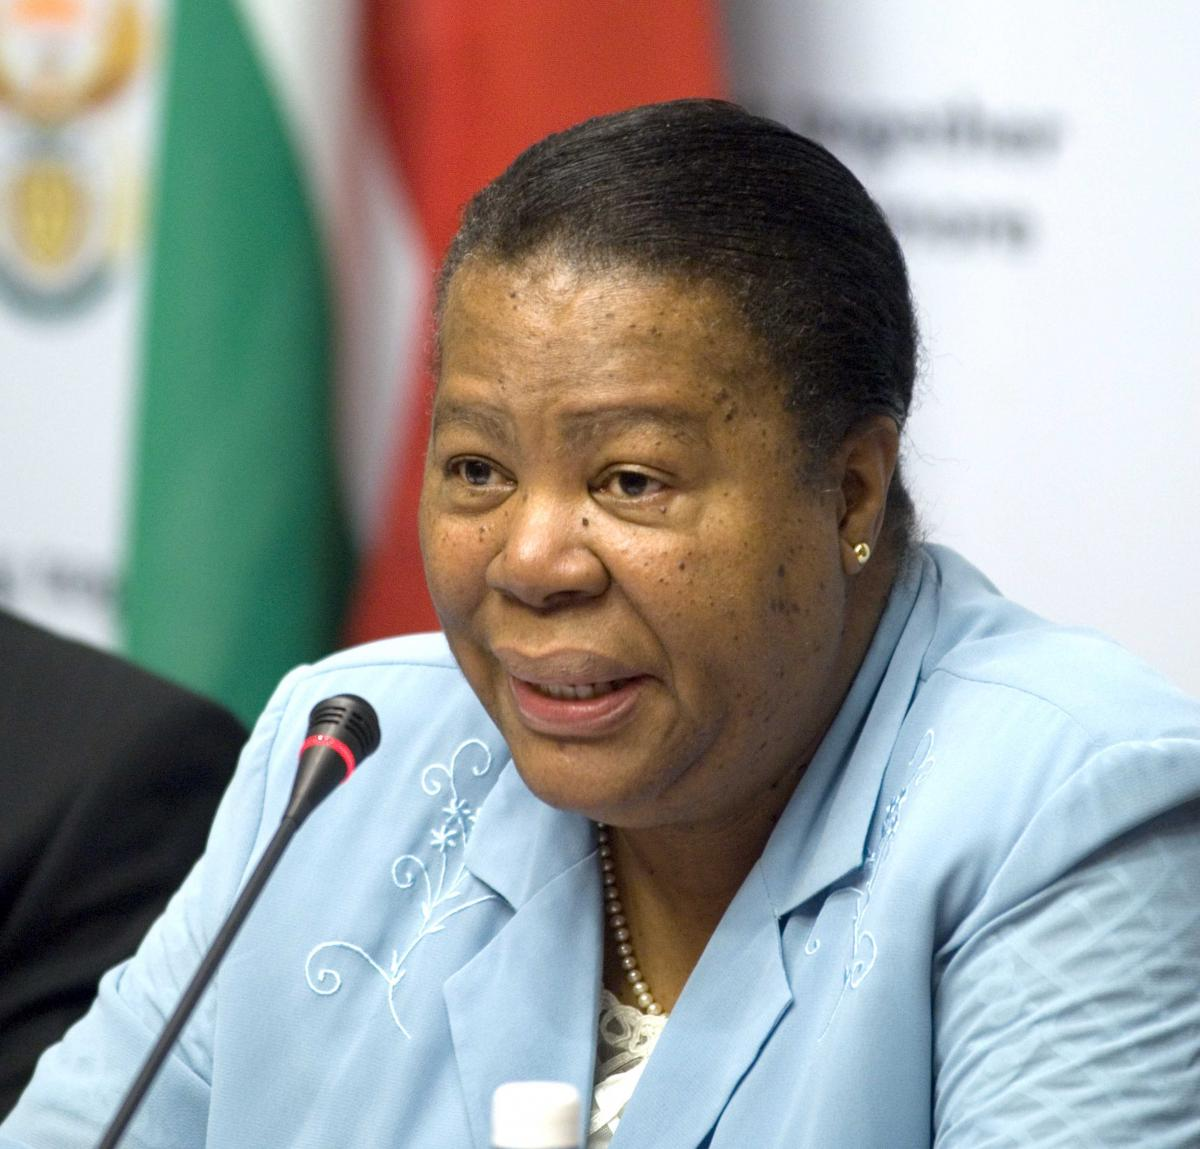 The Minister of Higher Education and Training said South Africa is able to afford the funding scheme and it is the country's duty to support the poor and most vulnerable families.